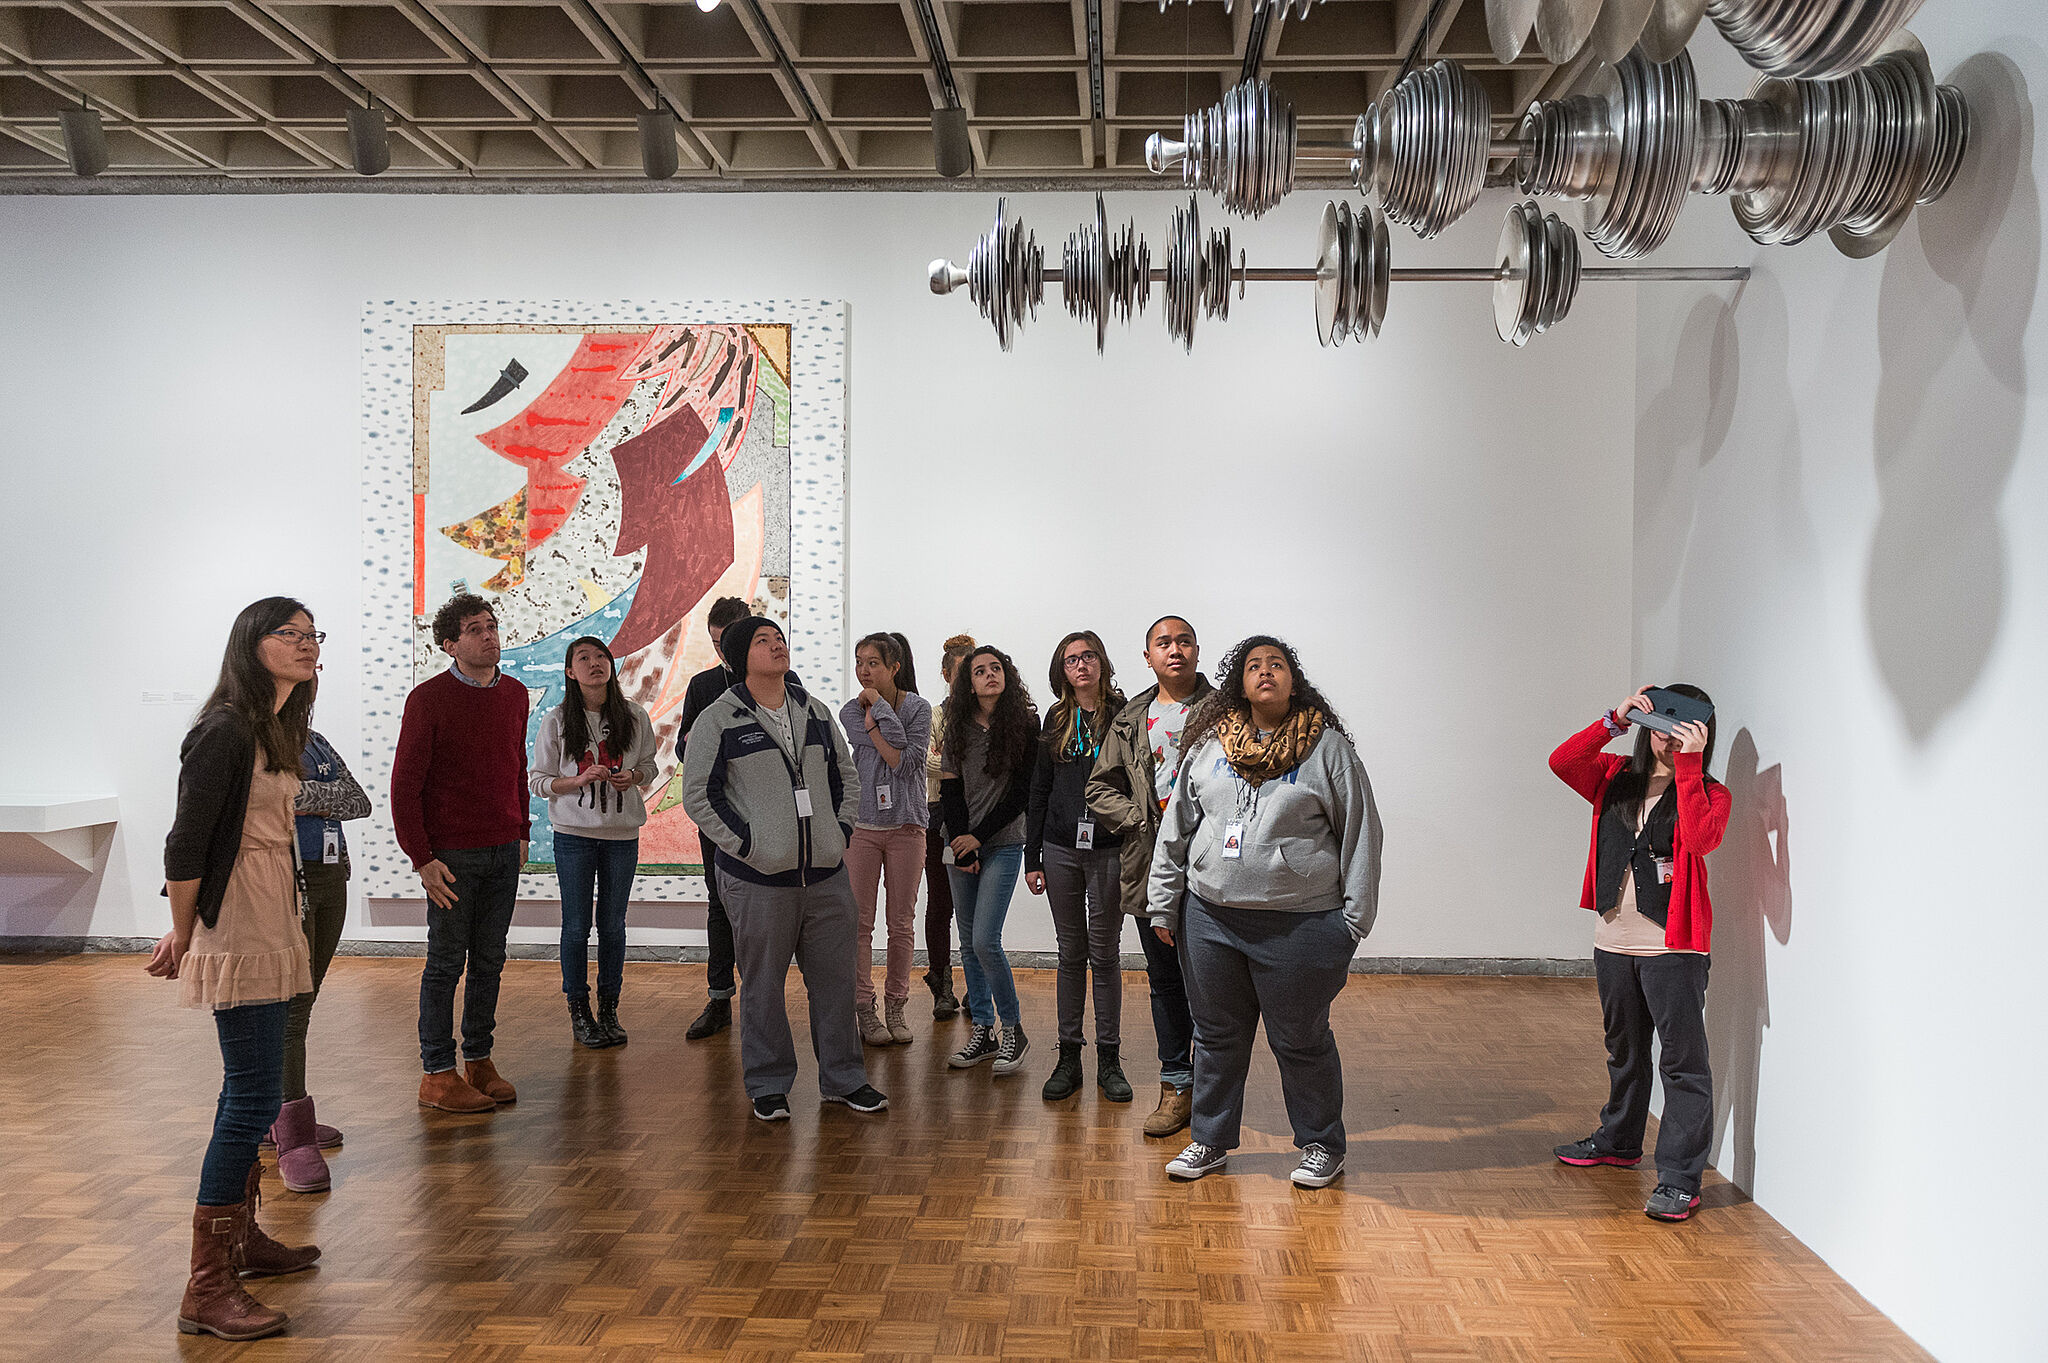 Teens take a tour of the Biennial exhibit with an artist.